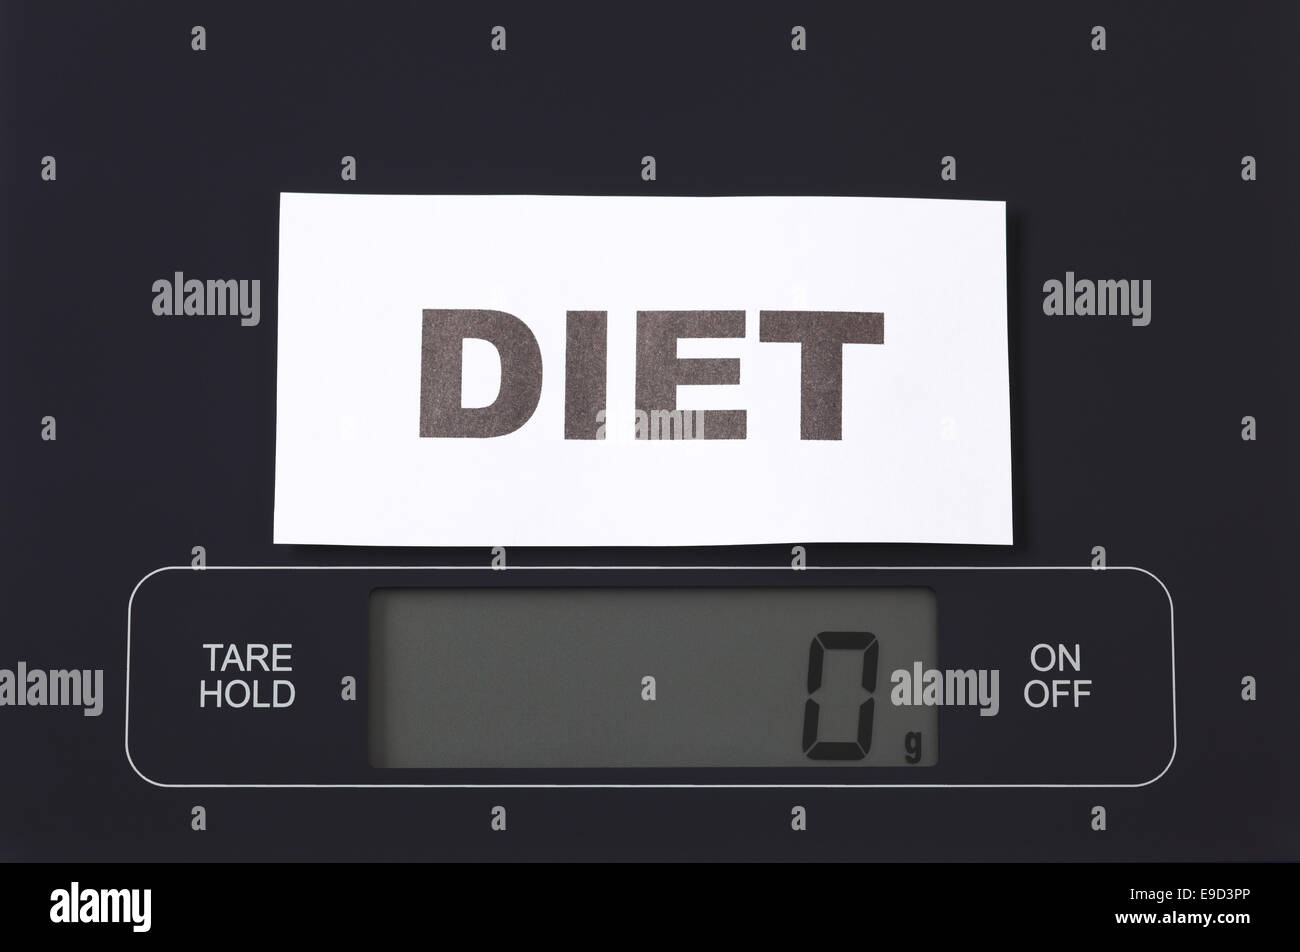 Word 'Diet' in a black plate on digital scale displaying 0 gram. - Stock Image